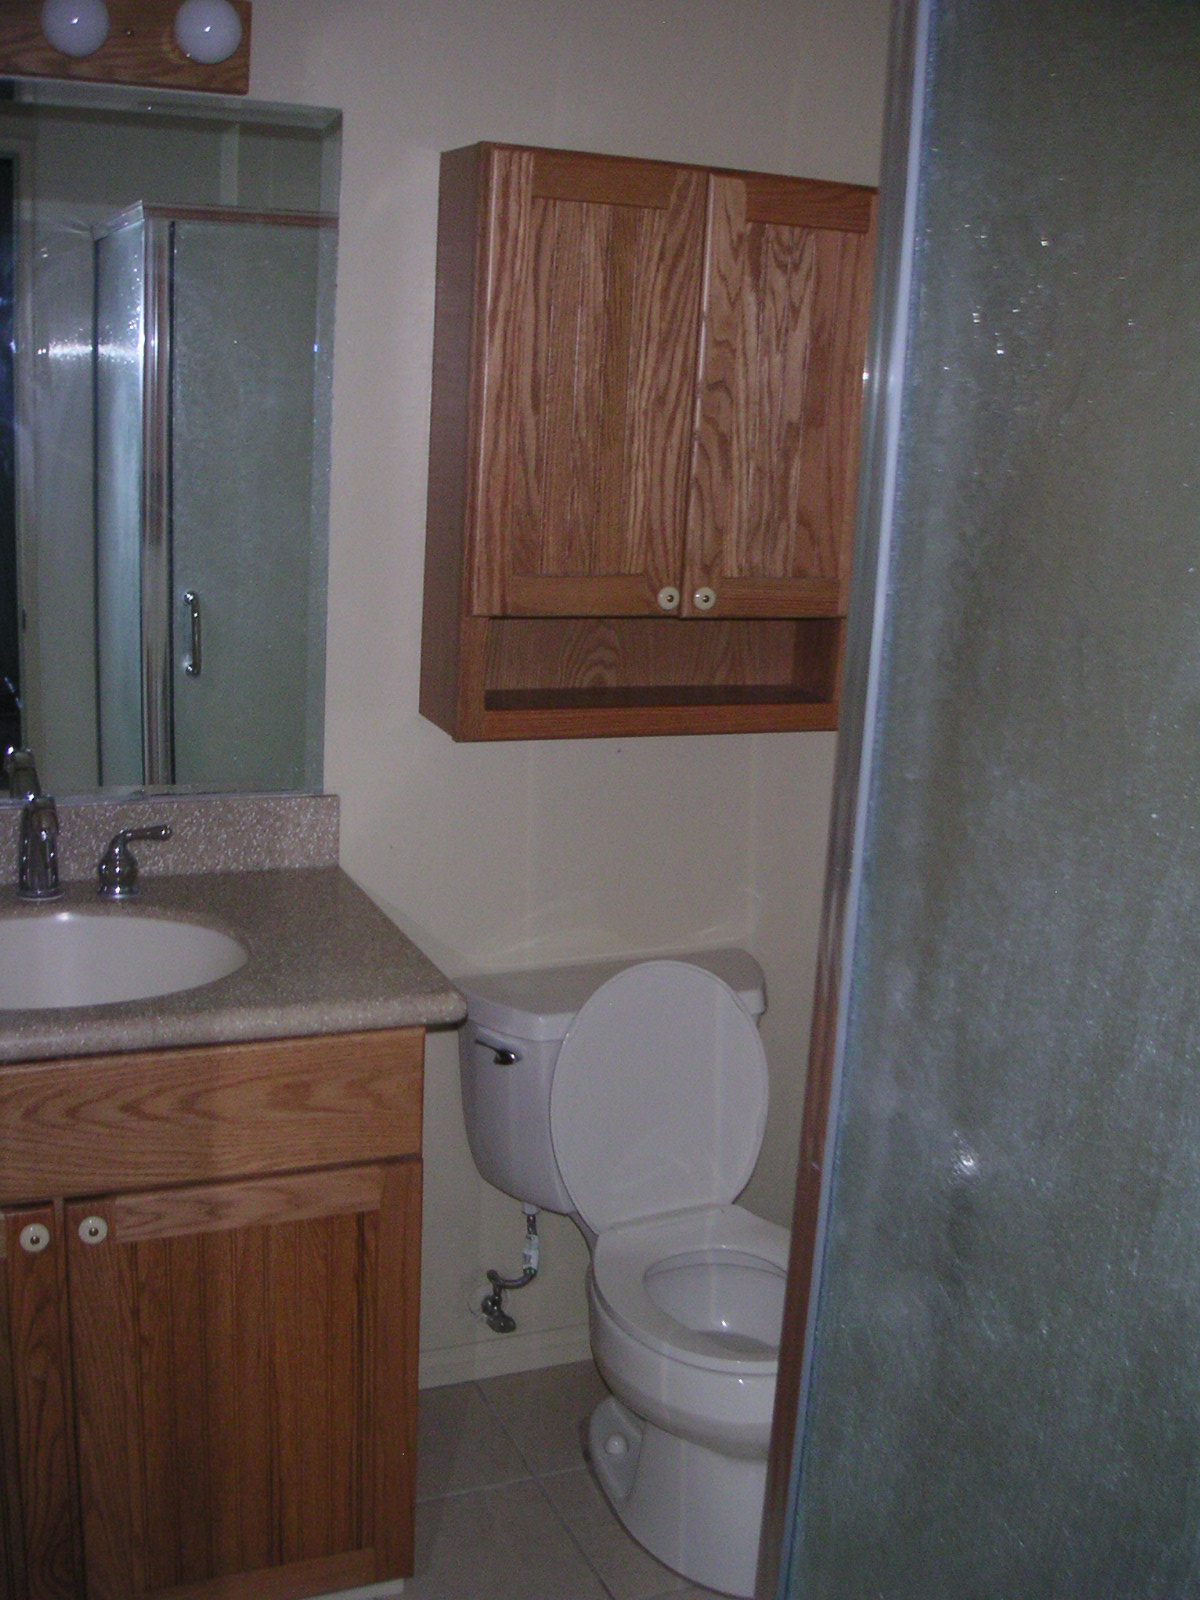 San Marcos Room For Rent Mulberry 92069 Regional Rental